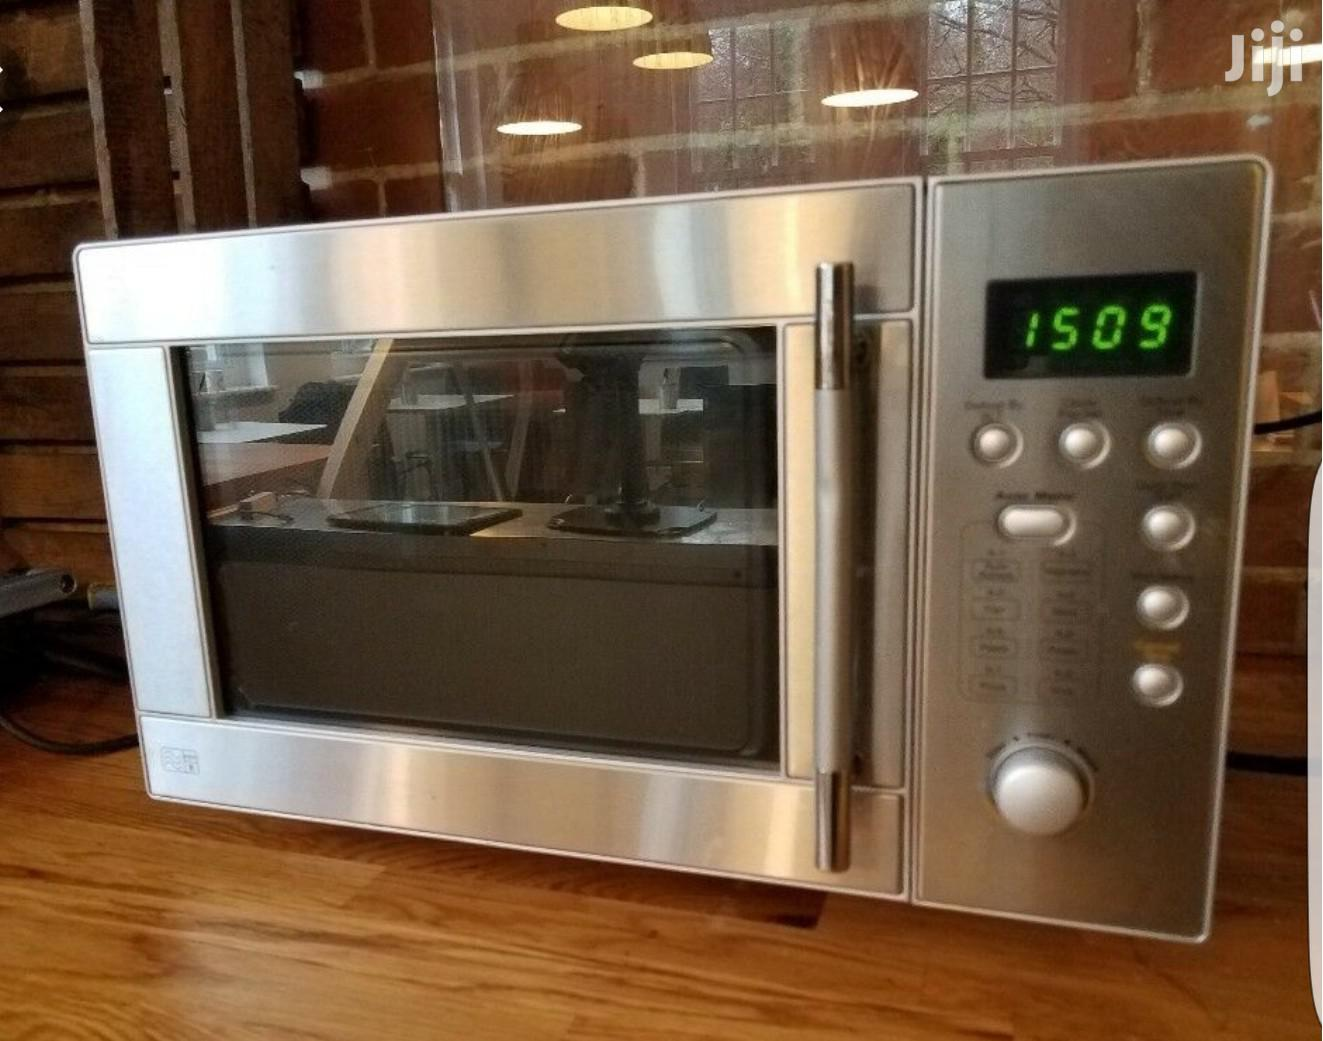 Sansbury Microwave Oven From UK (Stainless Steel)